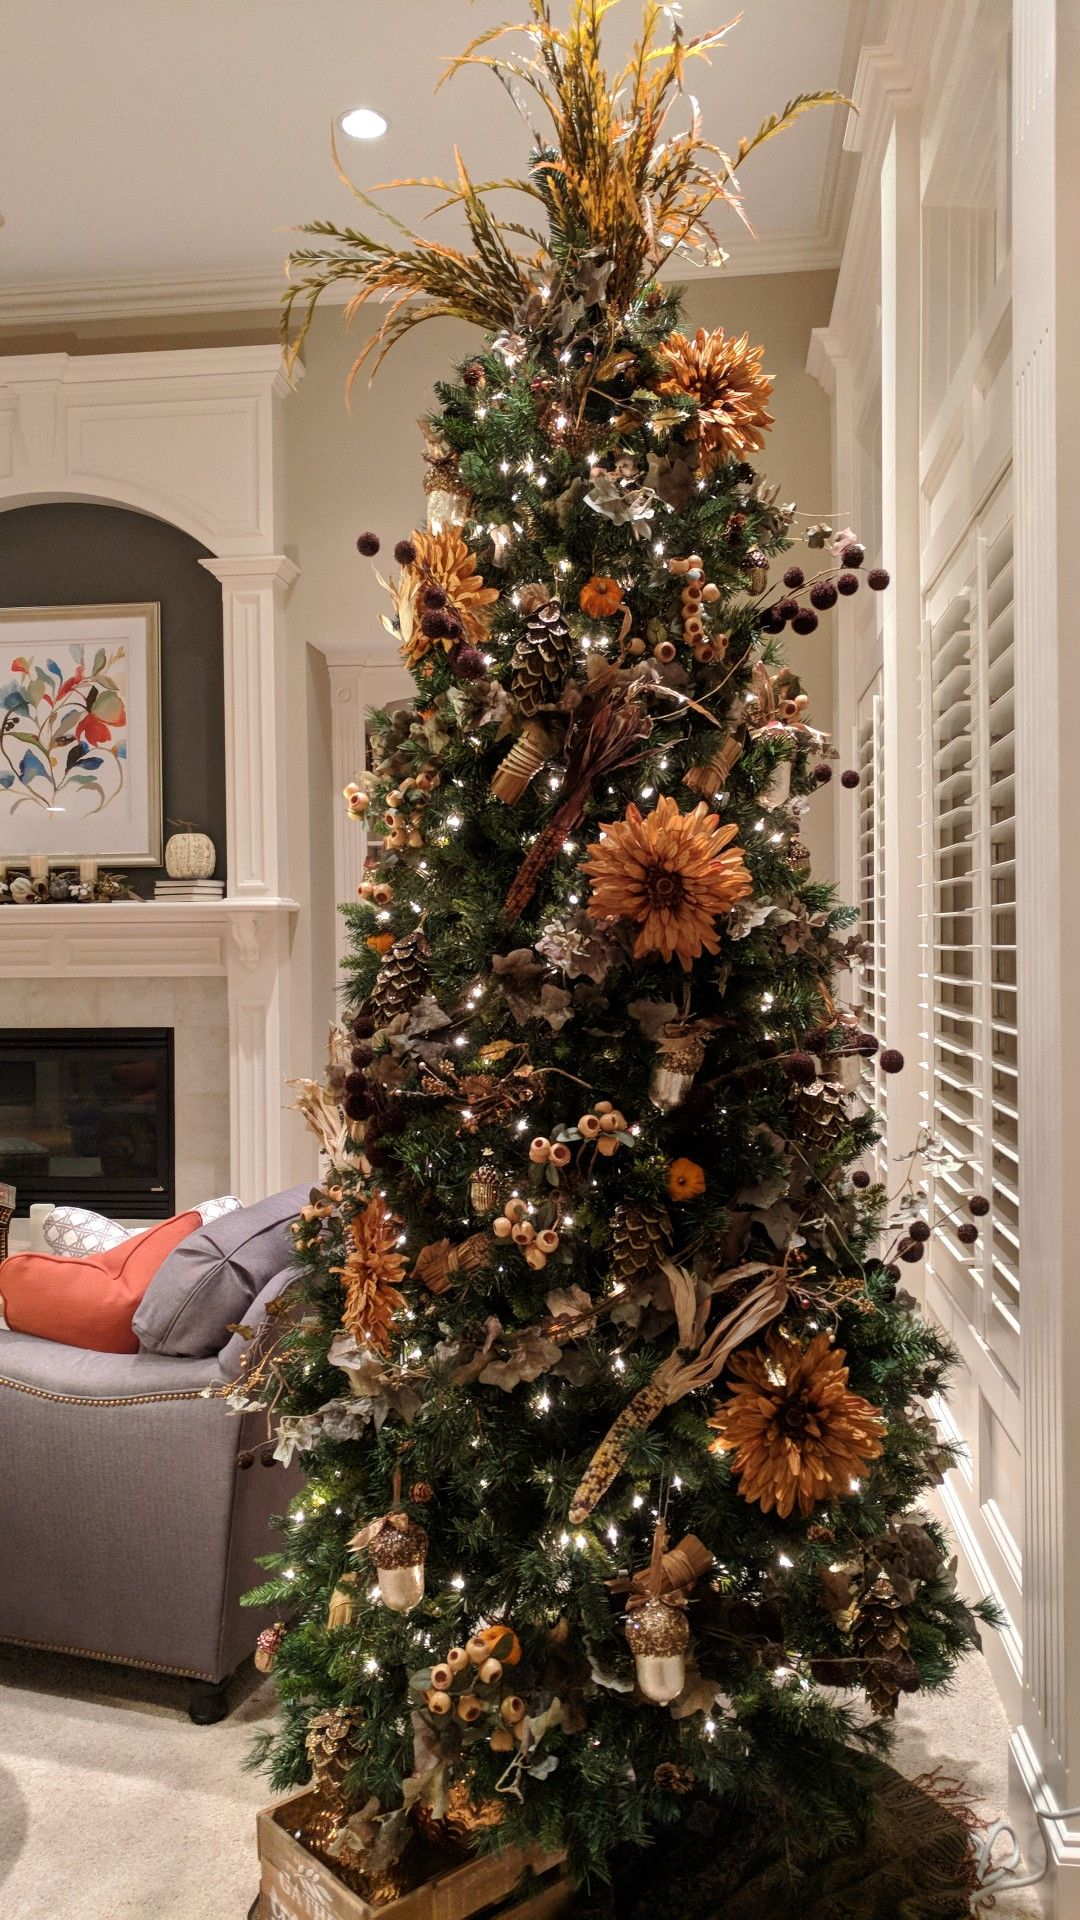 Turn your Christmas Tree into a Harvest Tree, perfect for